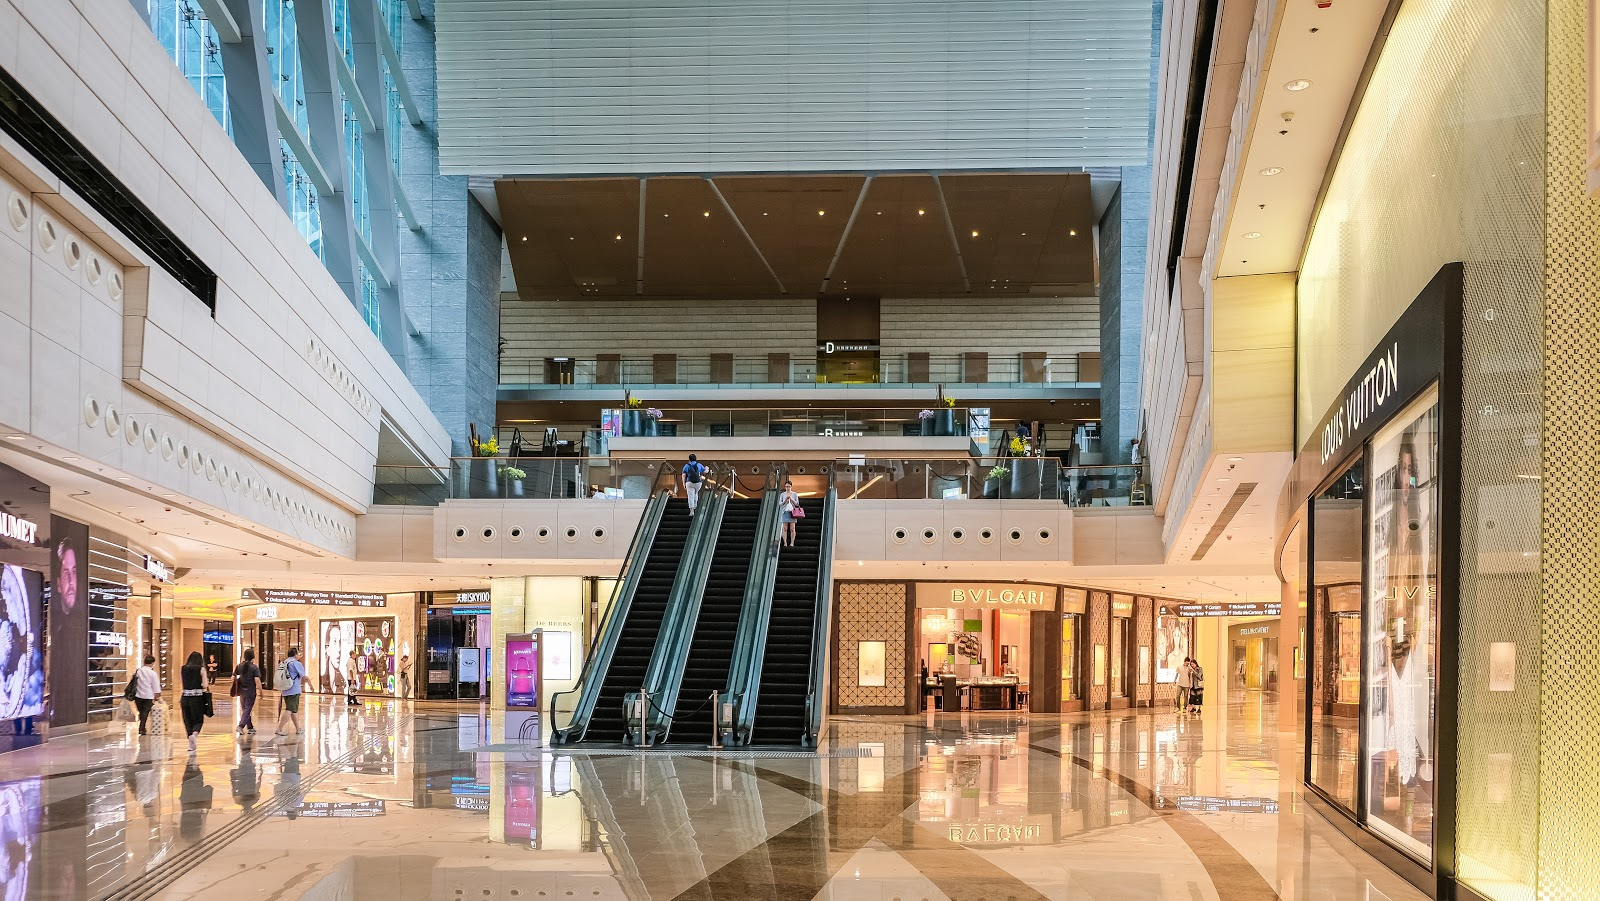 Customers walk in a mall, use escalators, and get navigation from their phones using beacons to the stores they're going to.